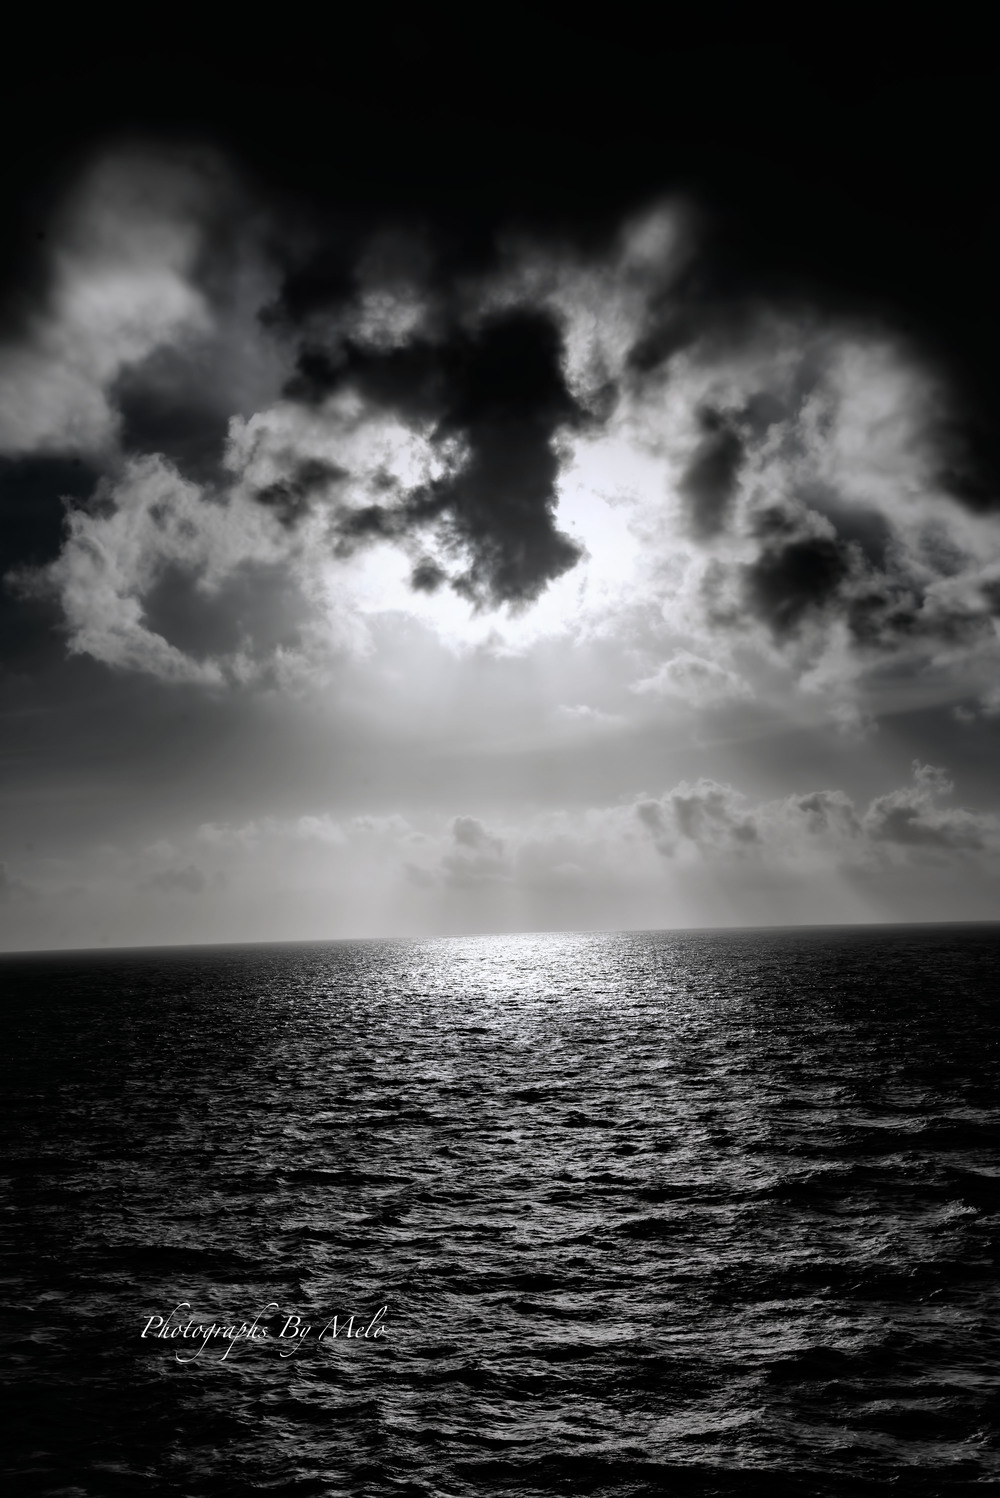 Sunset (B&W) in the Atlantic Ocean